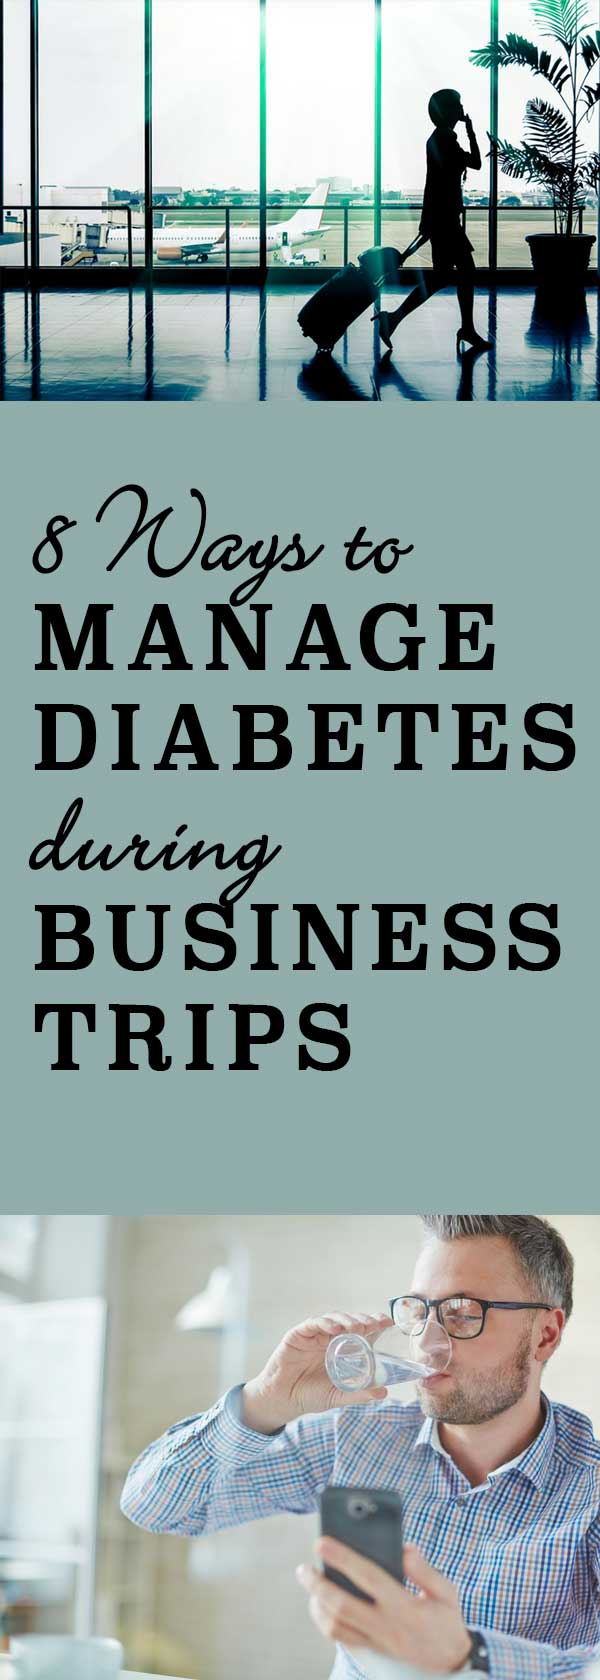 8 Ways to Manage Diabetes during Business Trips | diabeticfoodie.com